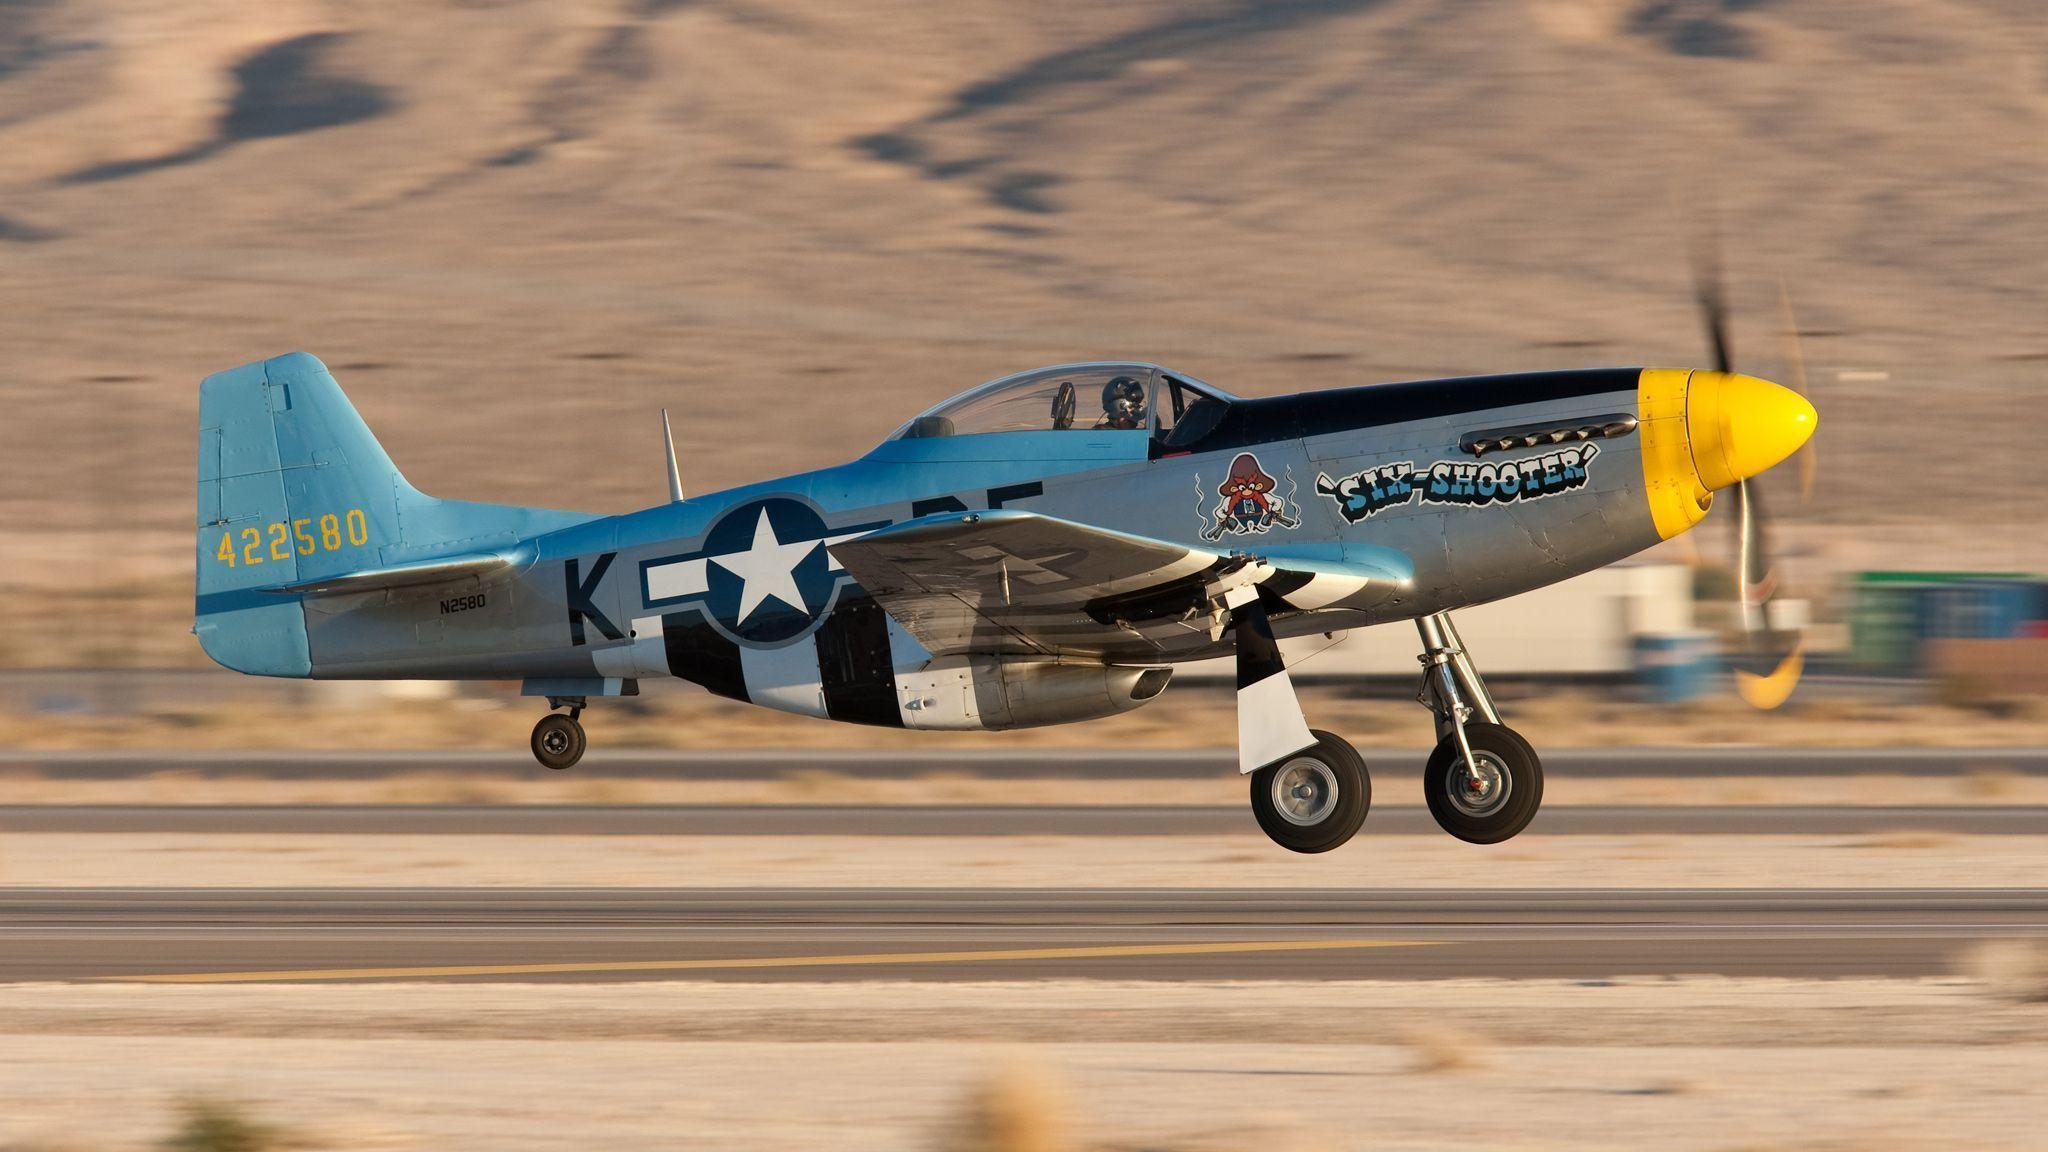 P 51 Mustang Wallpapers